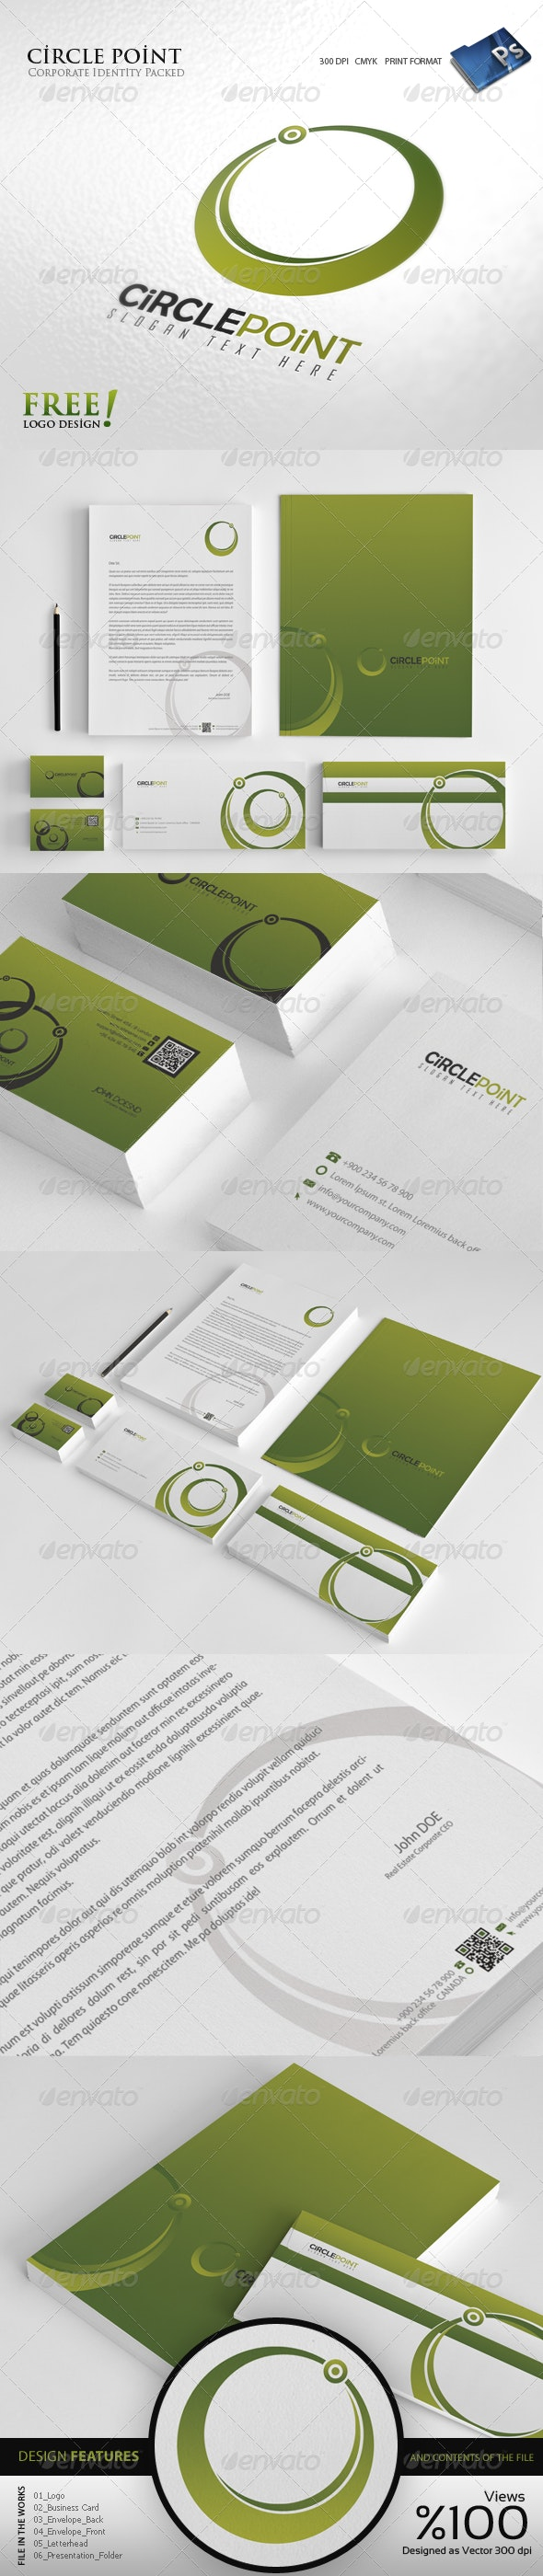 Circle Point - Corporate identity - Stationery Print Templates